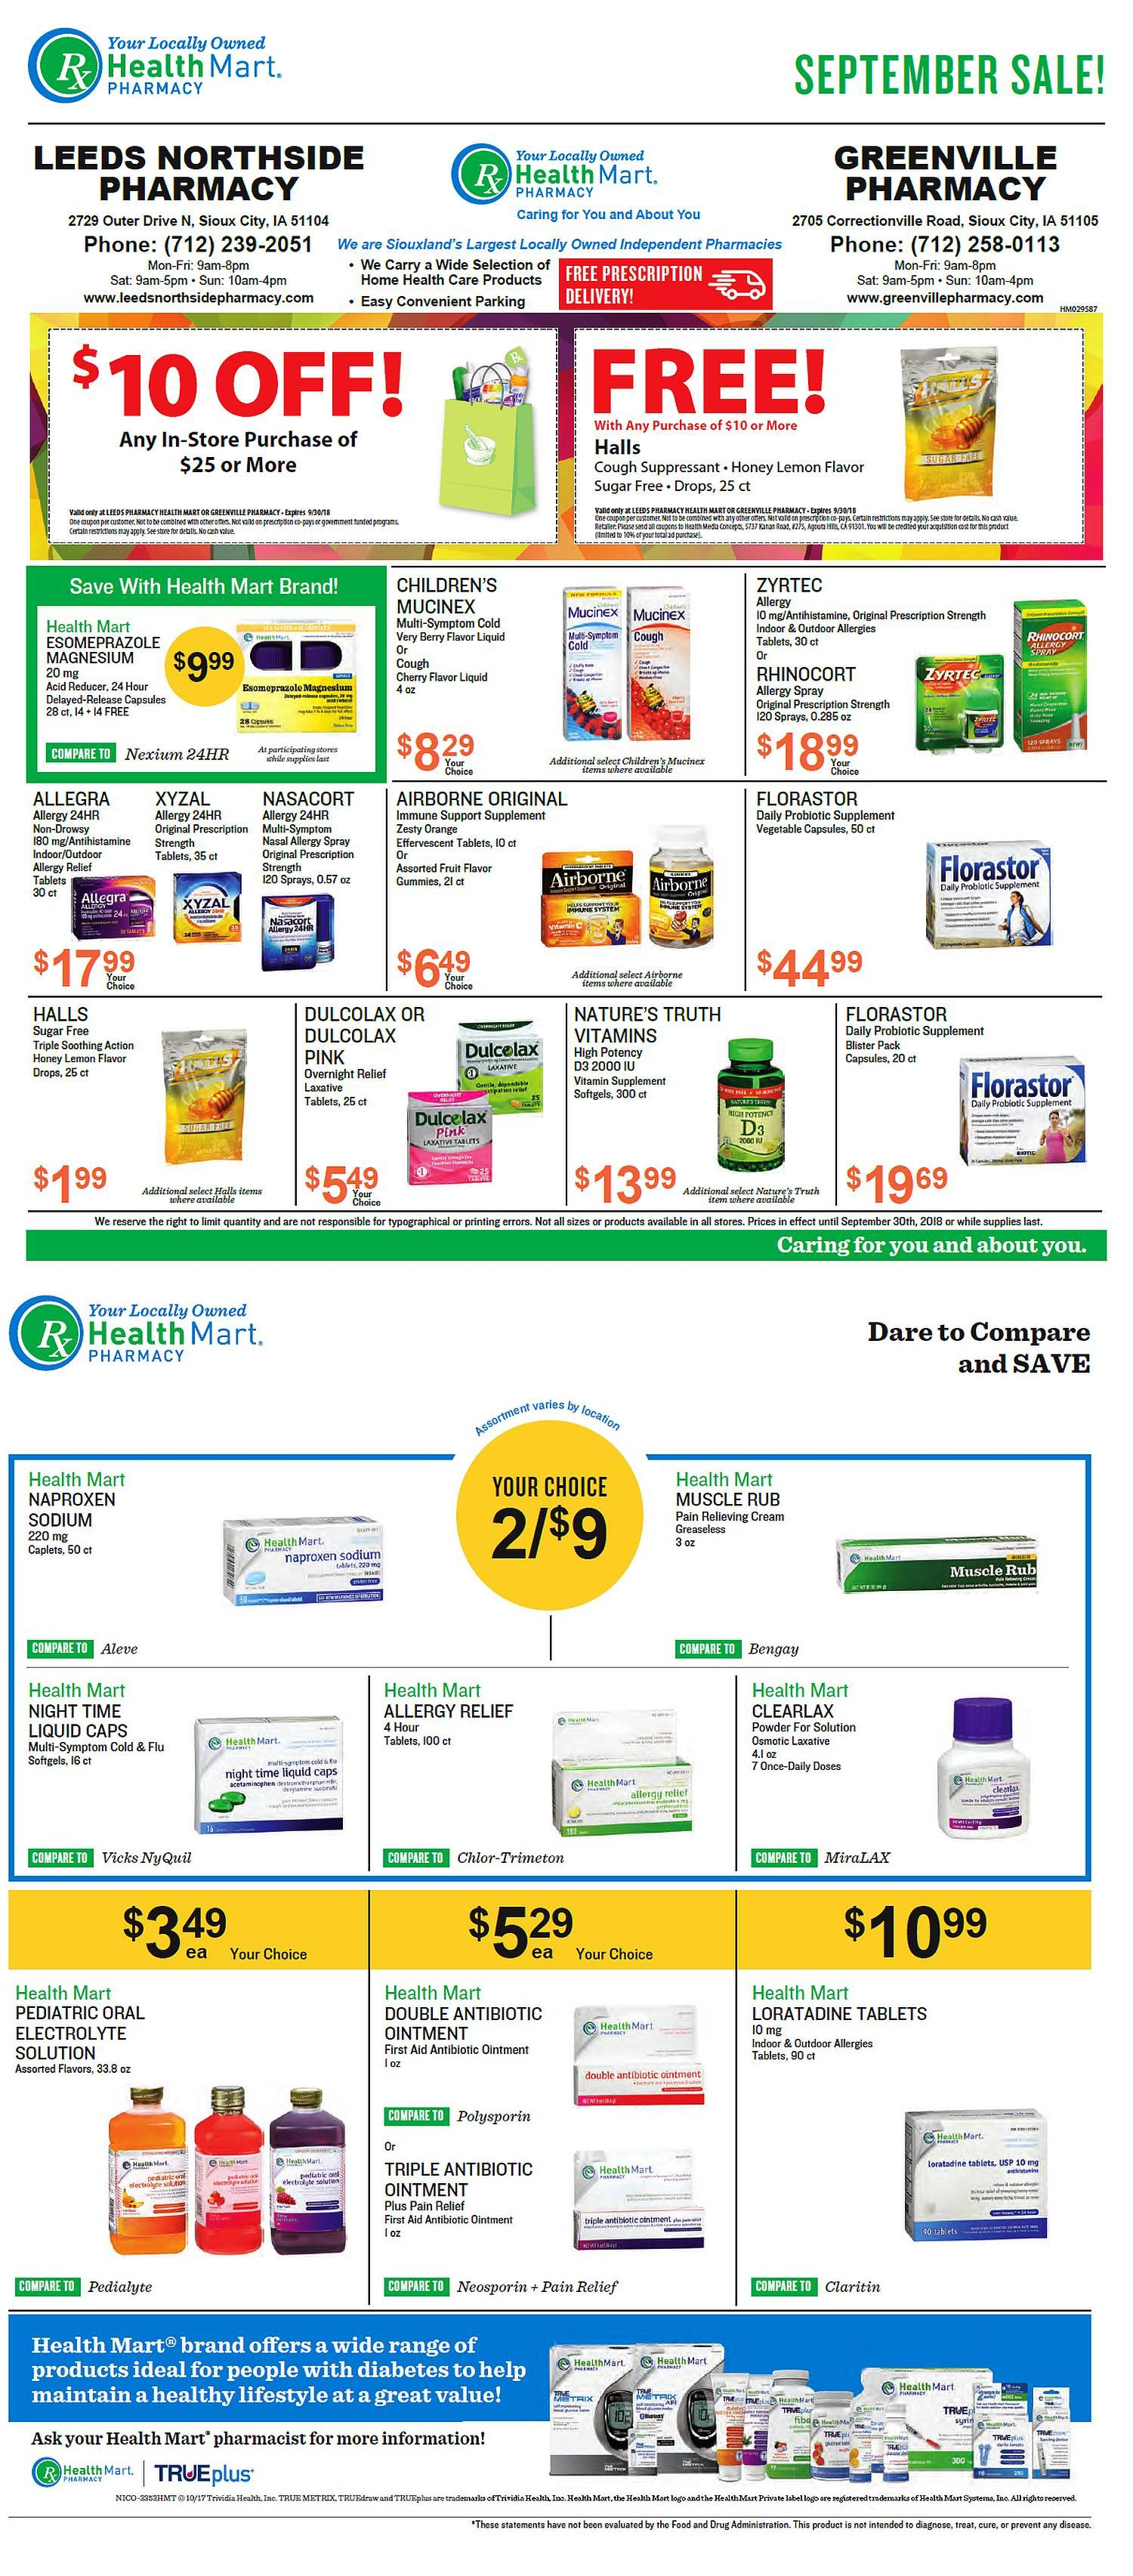 Leeds Northside Pharmacy & McKesson Savings August Sale Specials